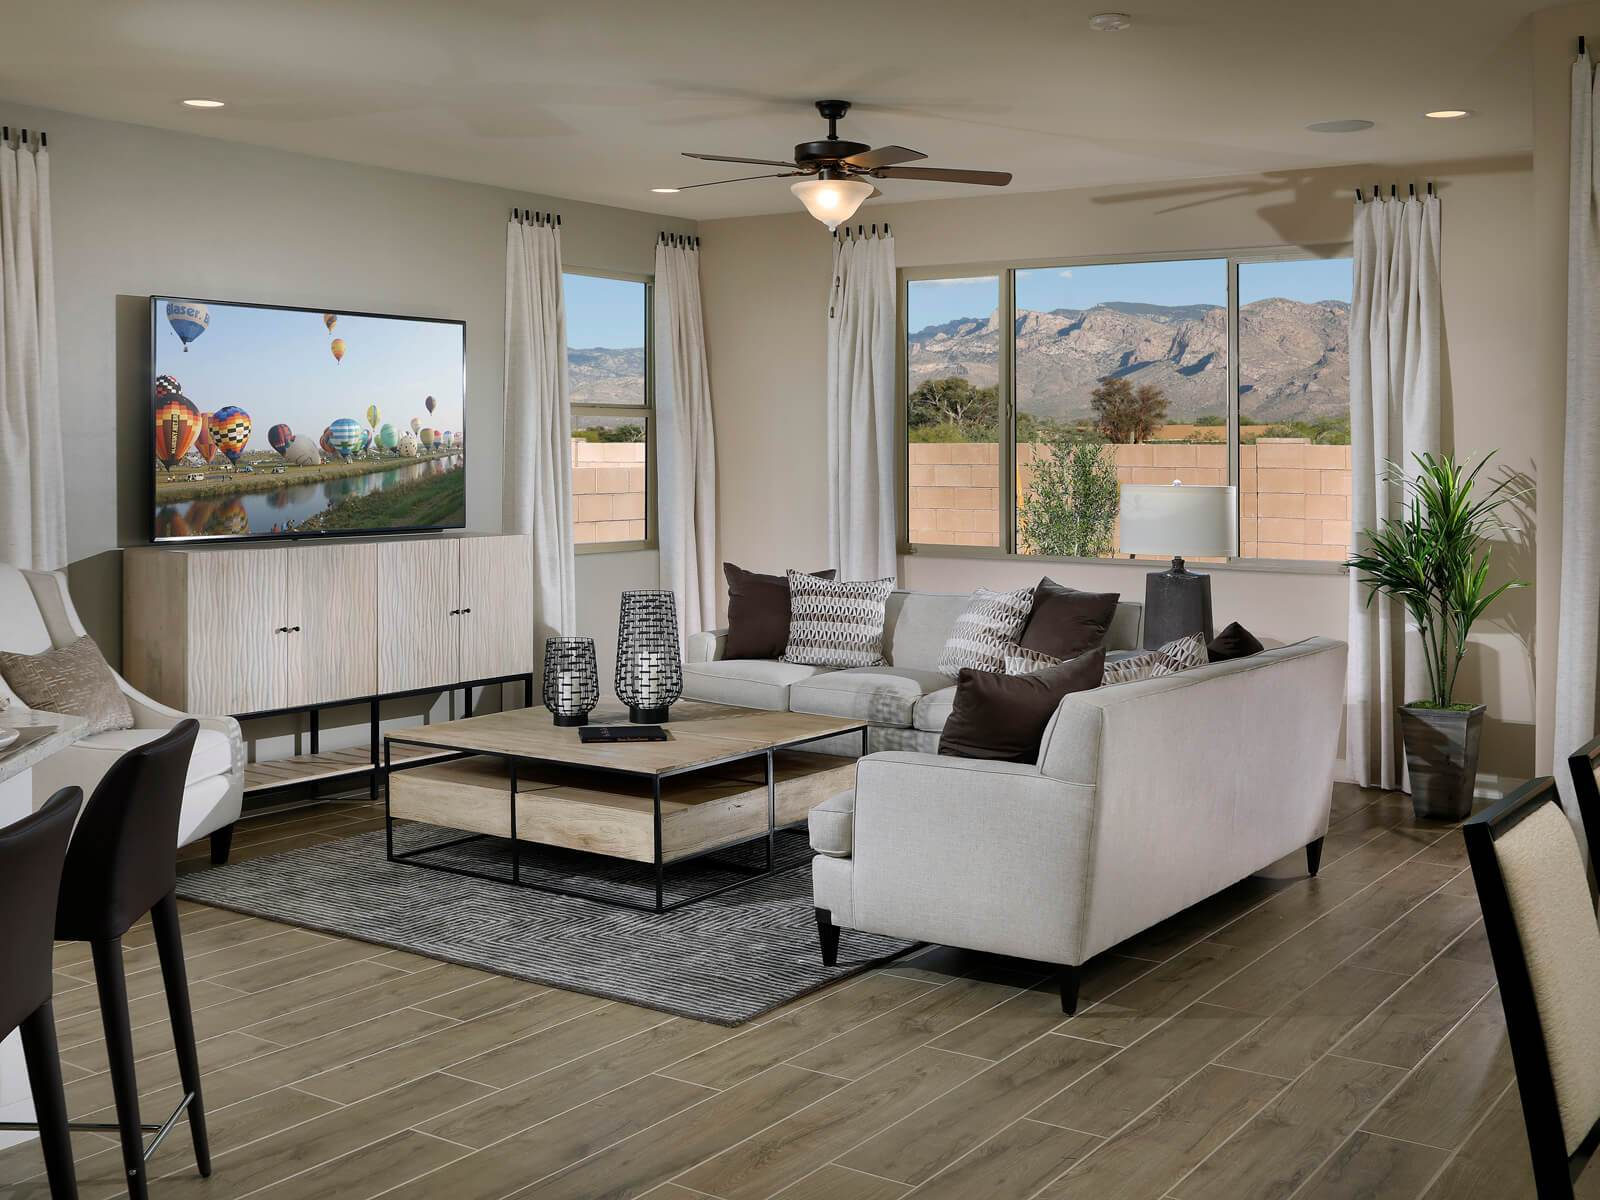 Living Area featured in the Festival By Meritage Homes in Tucson, AZ